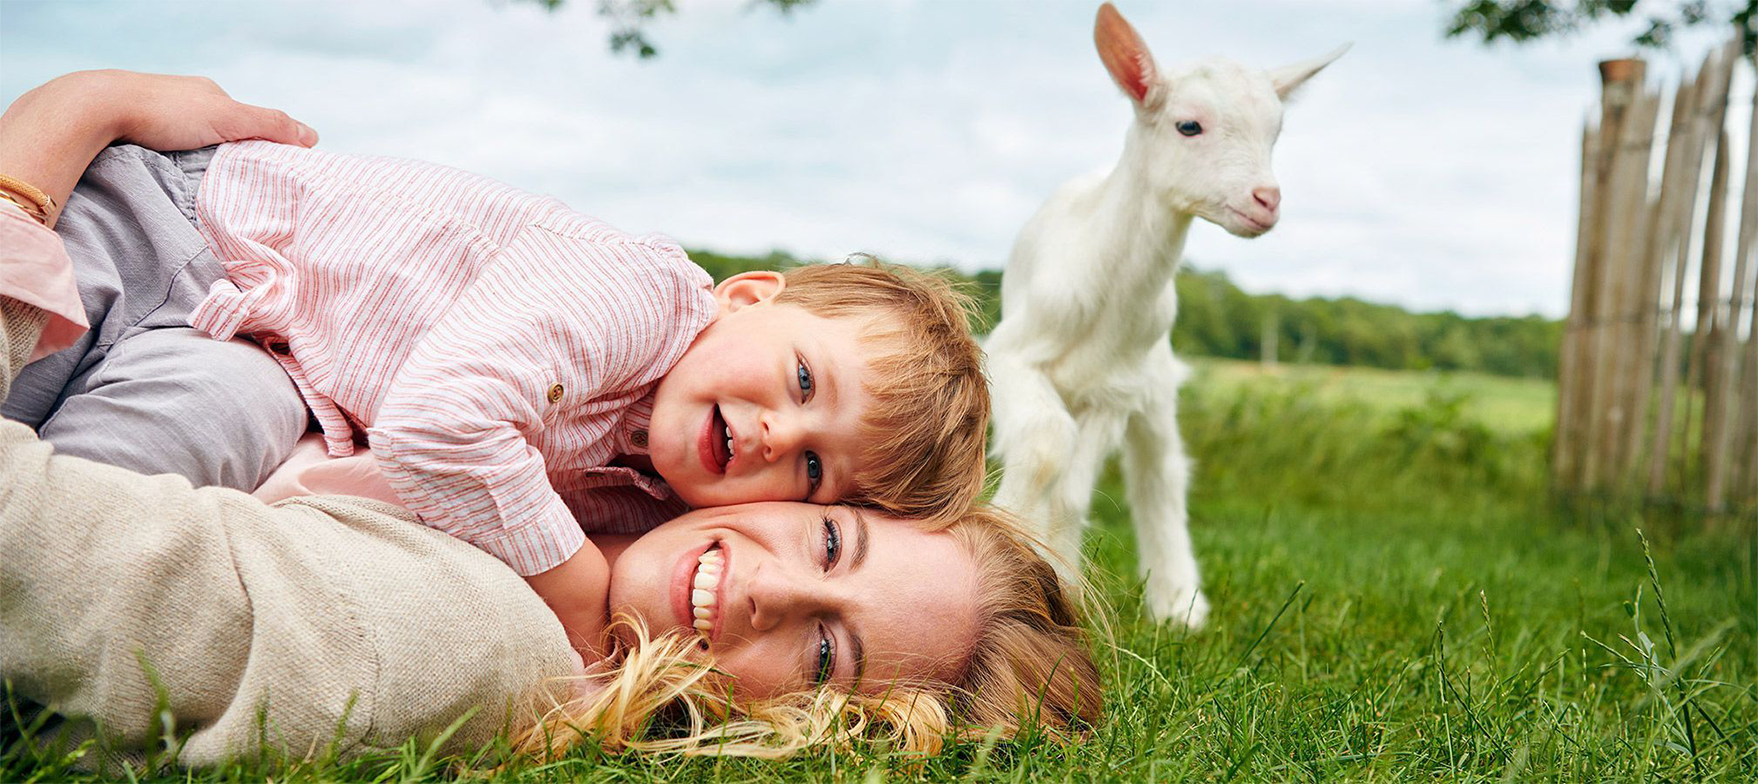 Mom and child laying in grass with baby goat looking on